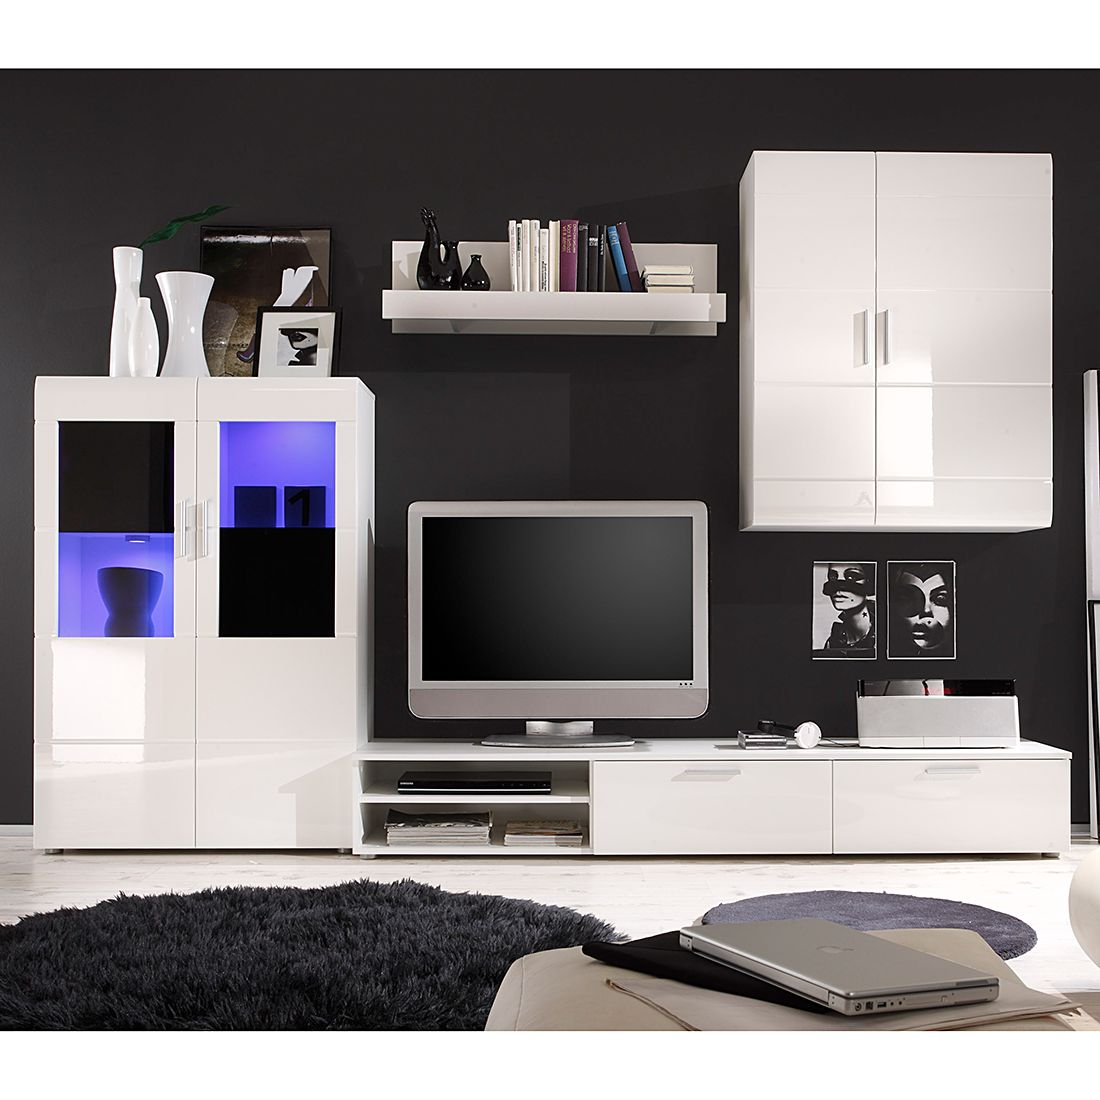 wohnwand dark moon ii 4 teilig hochglanz wei absetzung schwarz ohne beleuchtung schrank. Black Bedroom Furniture Sets. Home Design Ideas